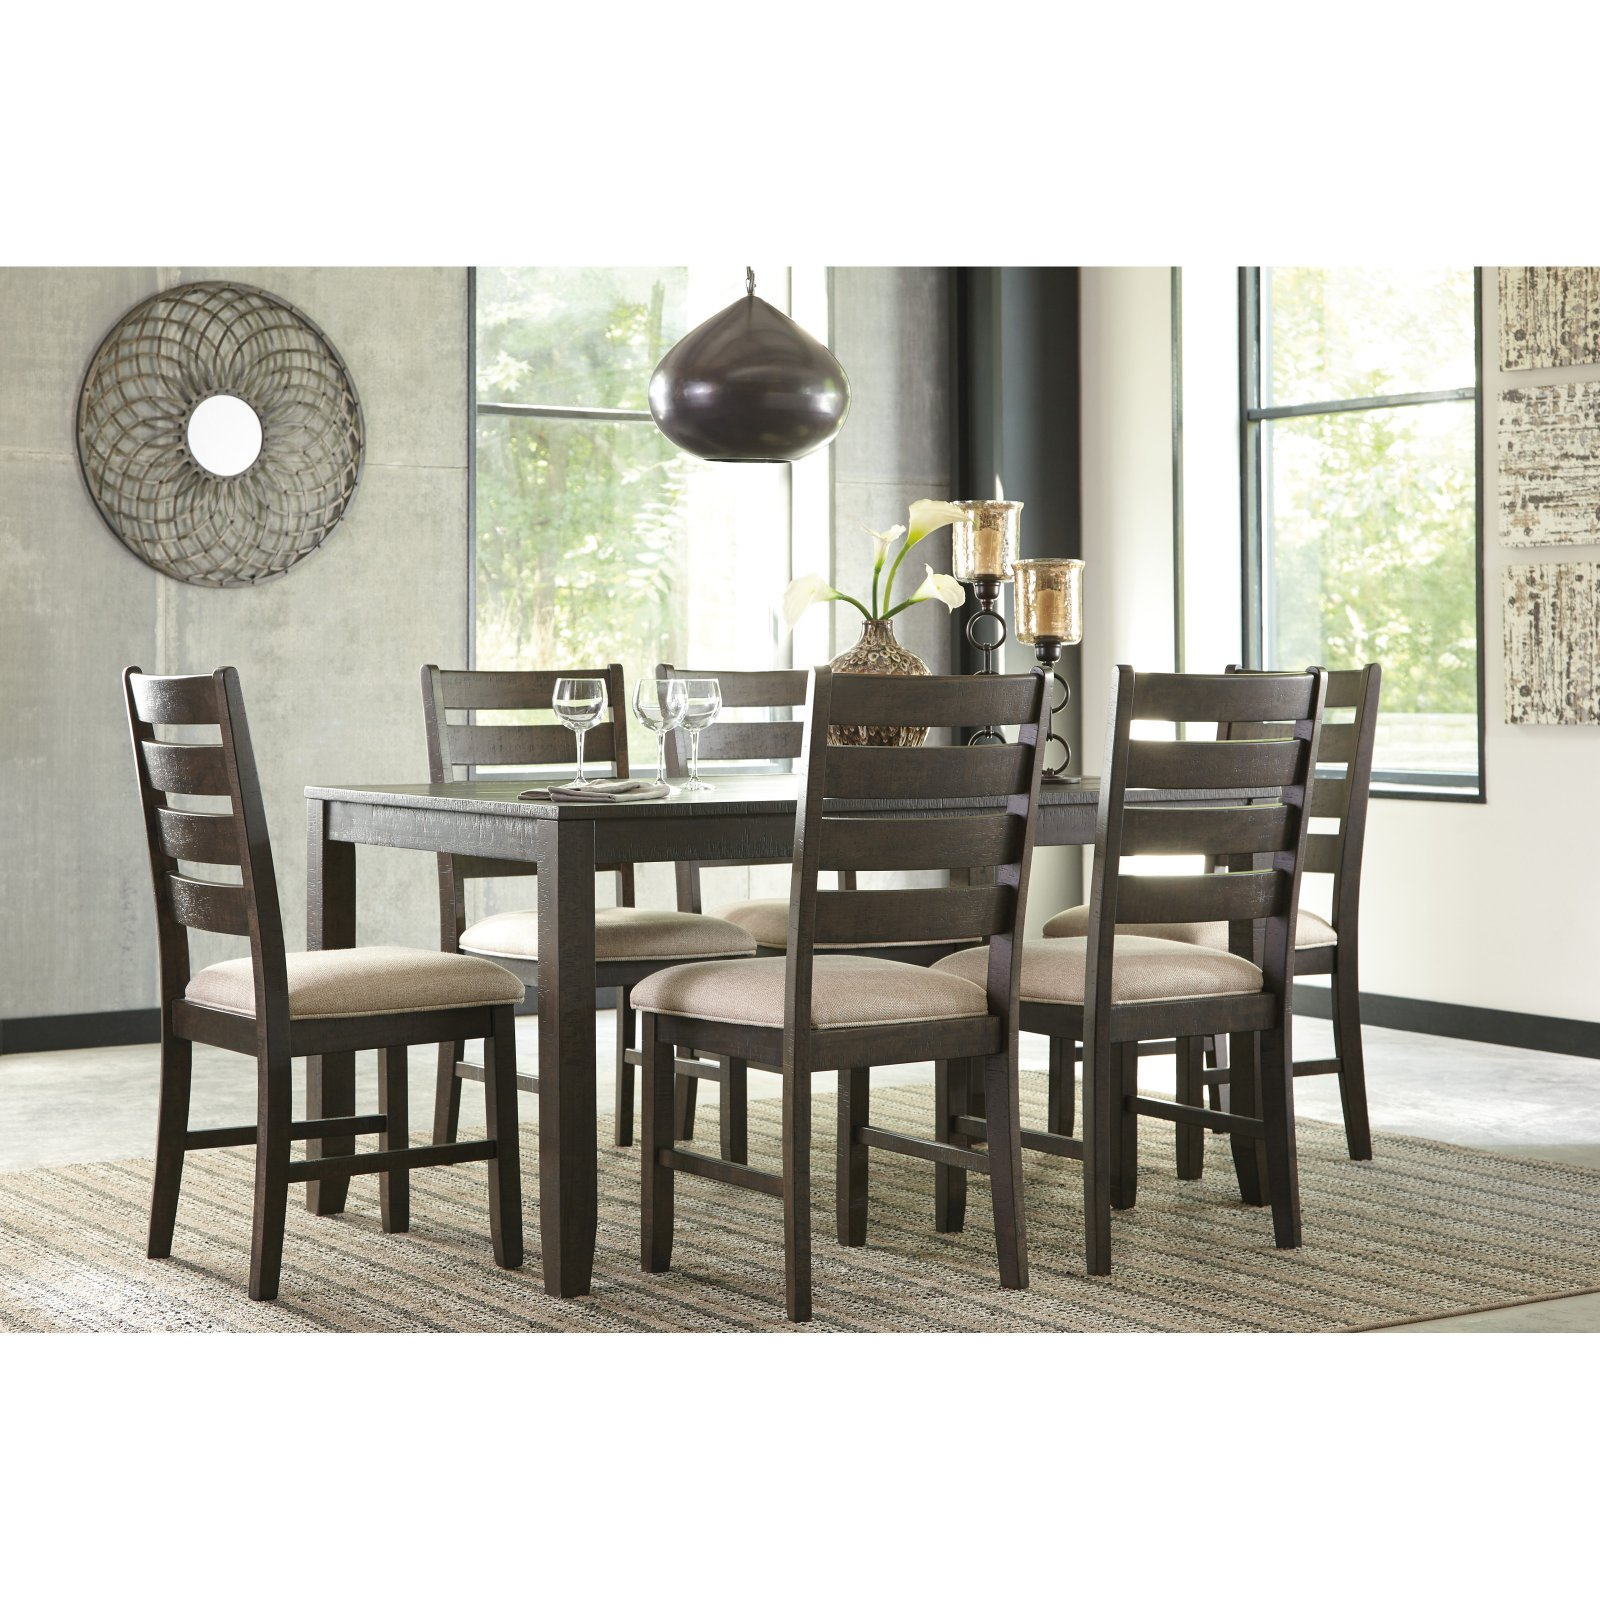 Signature Design by Ashley Rokane 7 Piece Dining Table Set  sc 1 st  Walmart : 7 piece dining table set - pezcame.com